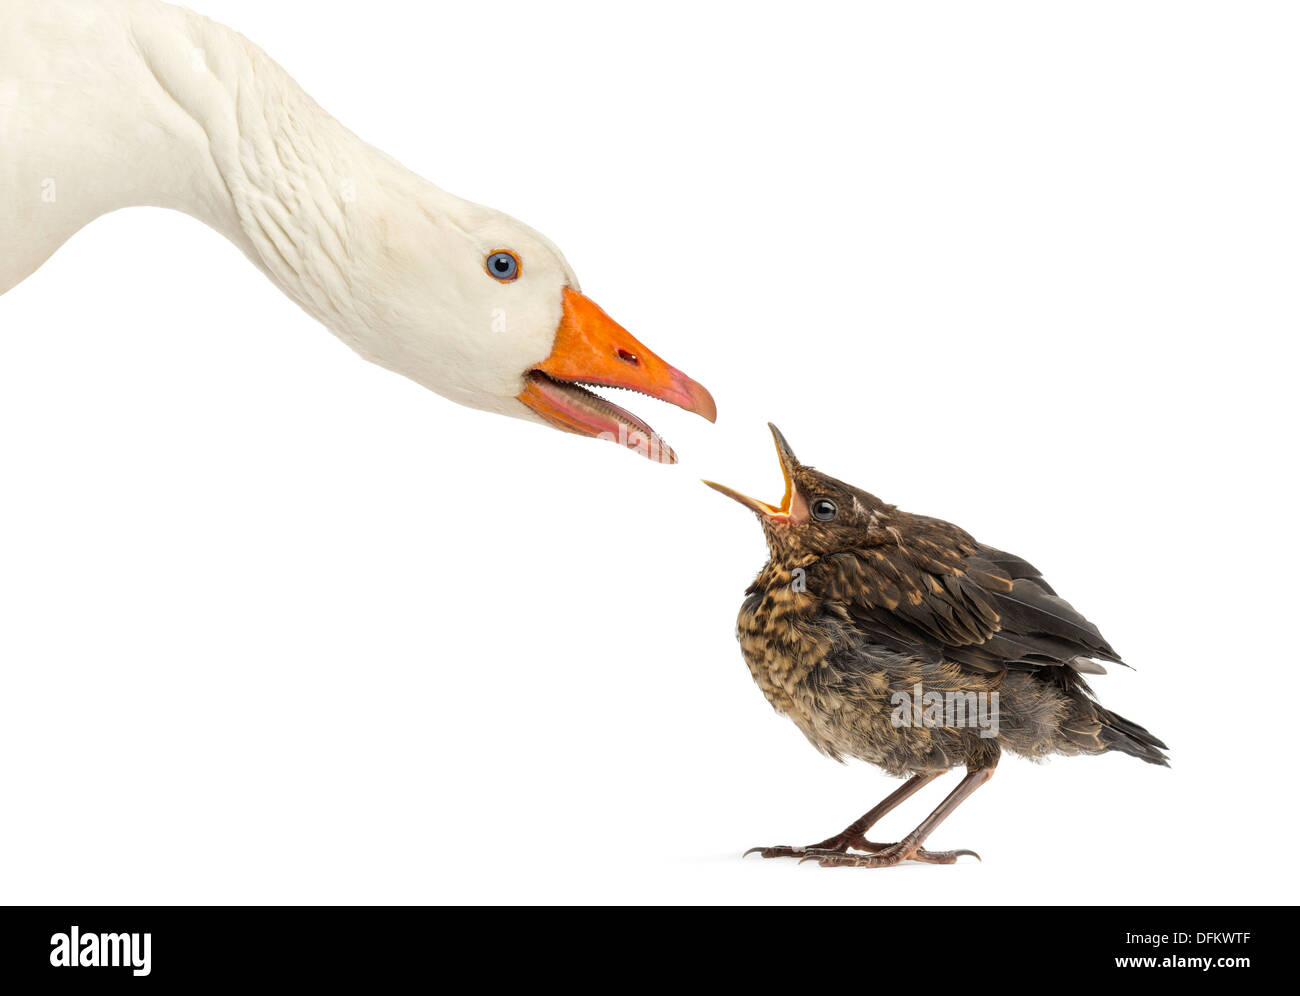 Side view of a Domestic goose and a Common Blackbird facing each other against white background - Stock Image